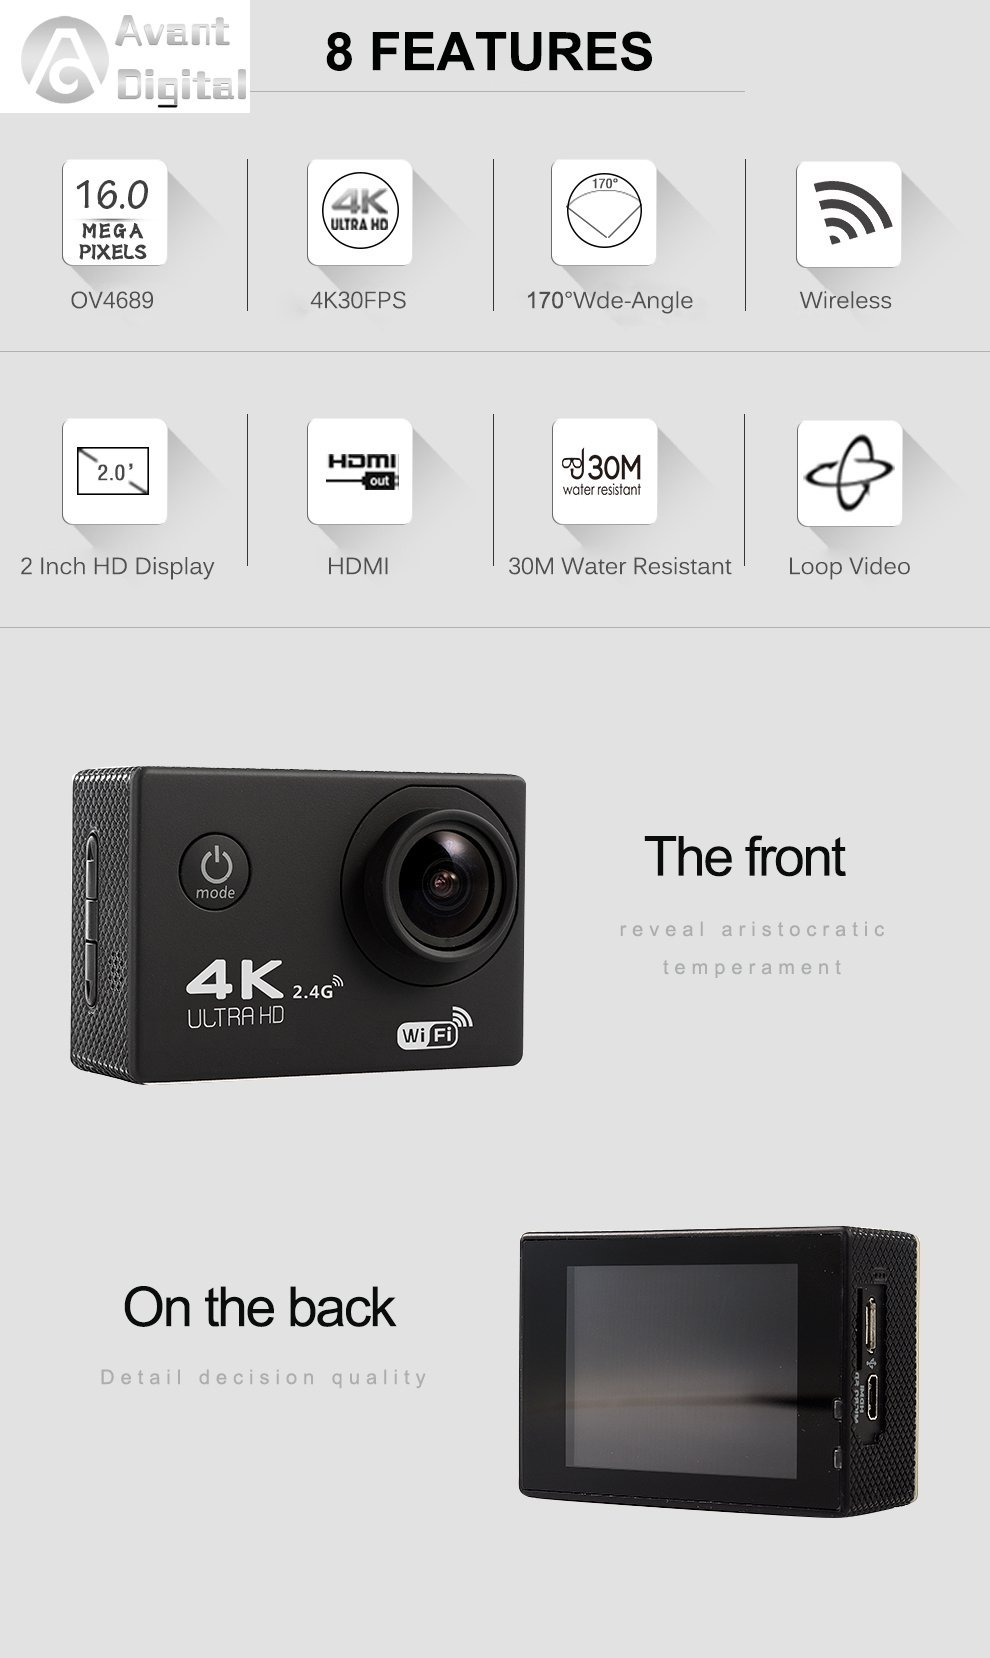 Waterproof Action Camera AD Sports Camera 4K 16MP Wifi Remote Control 170 Ultra Wide Lens SONY Sensor 2017 Newest by Avant Digital (Image #2)